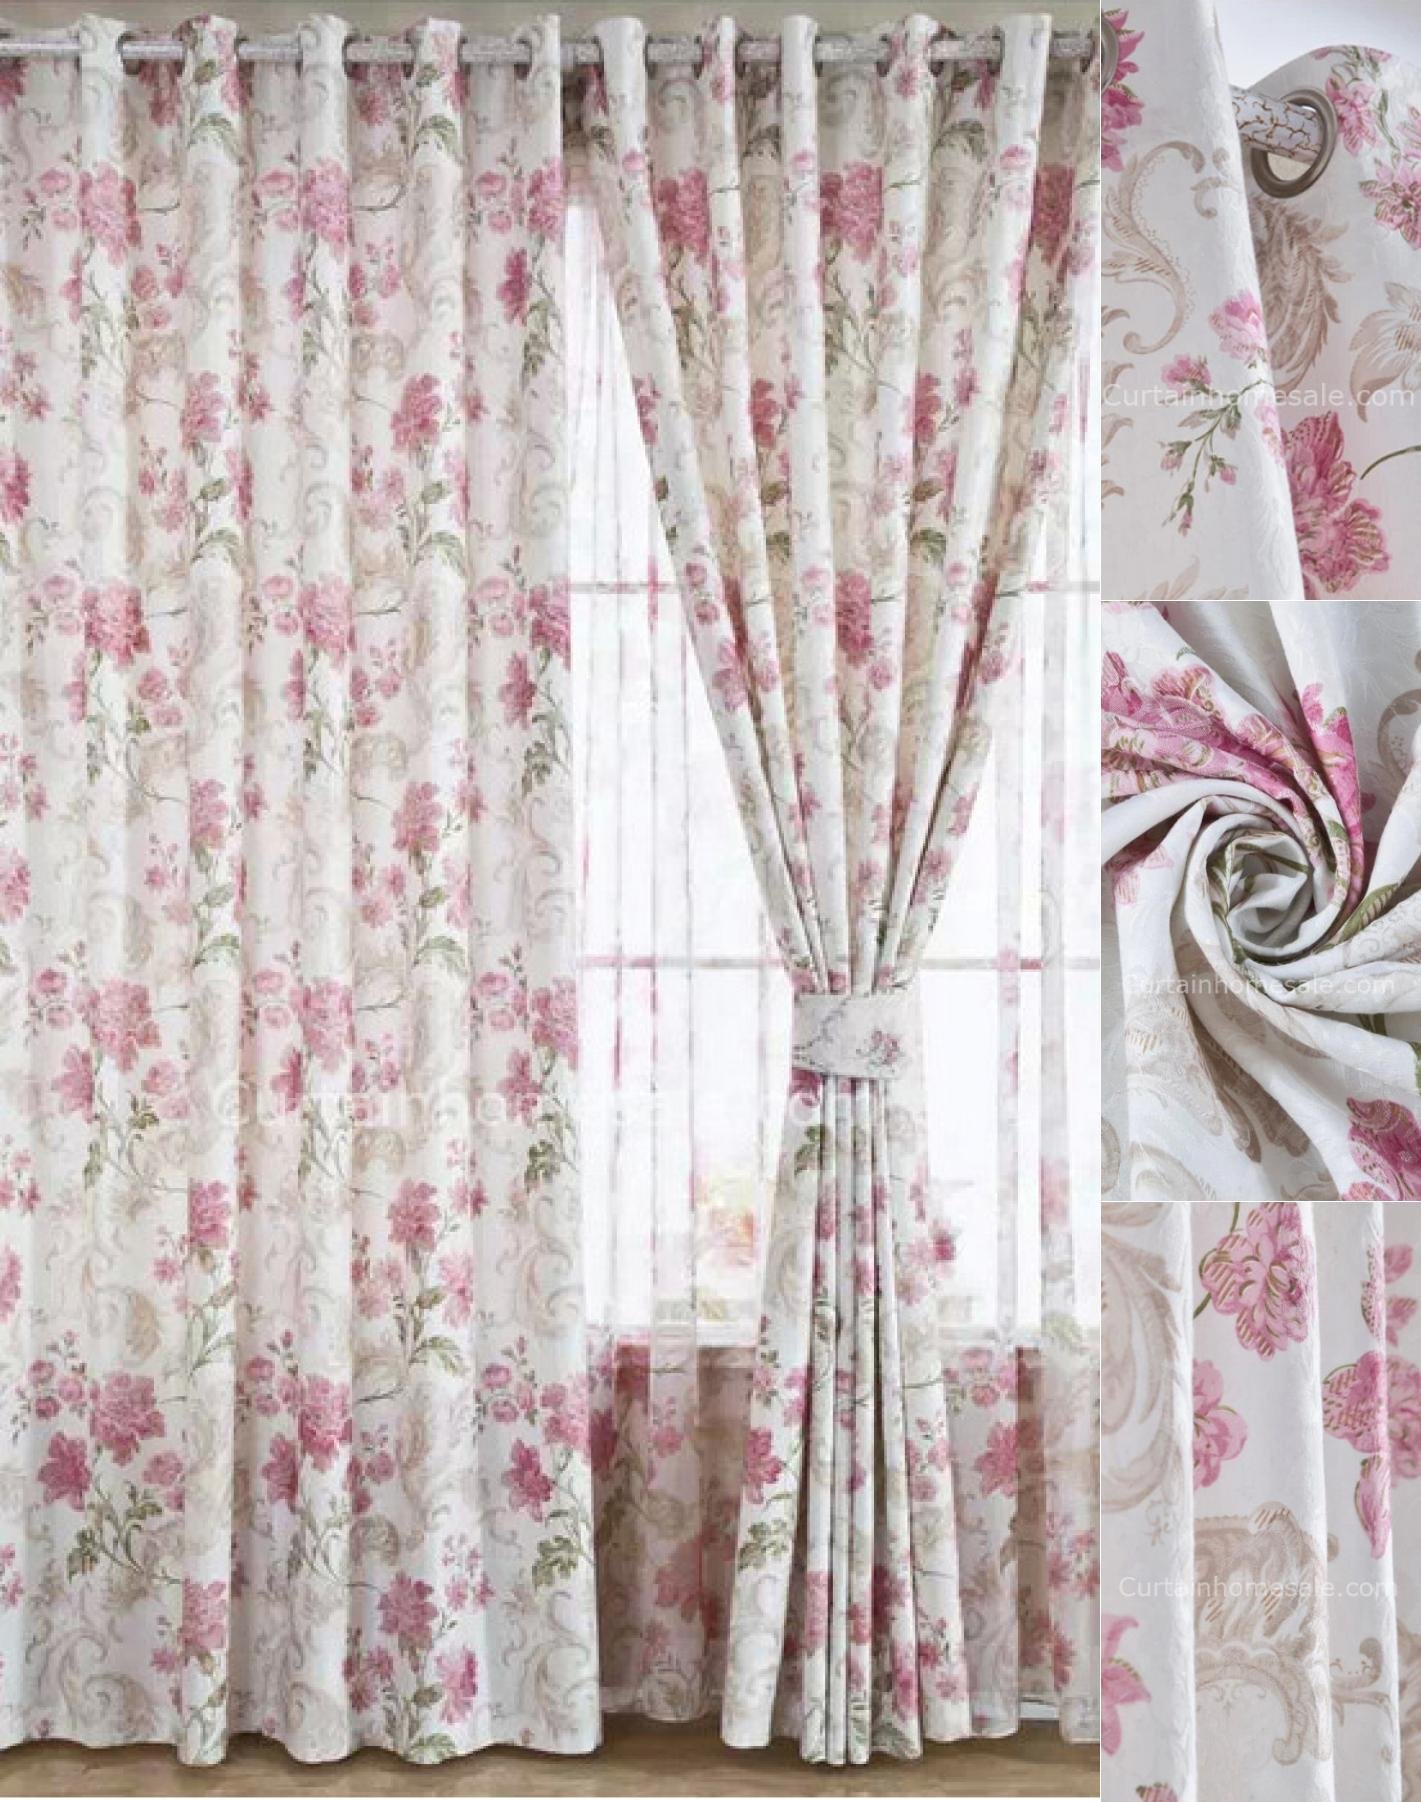 Best Charming Floral Bedroom Curtains Of White Color In Pink Flowers For Good Quality With Pictures